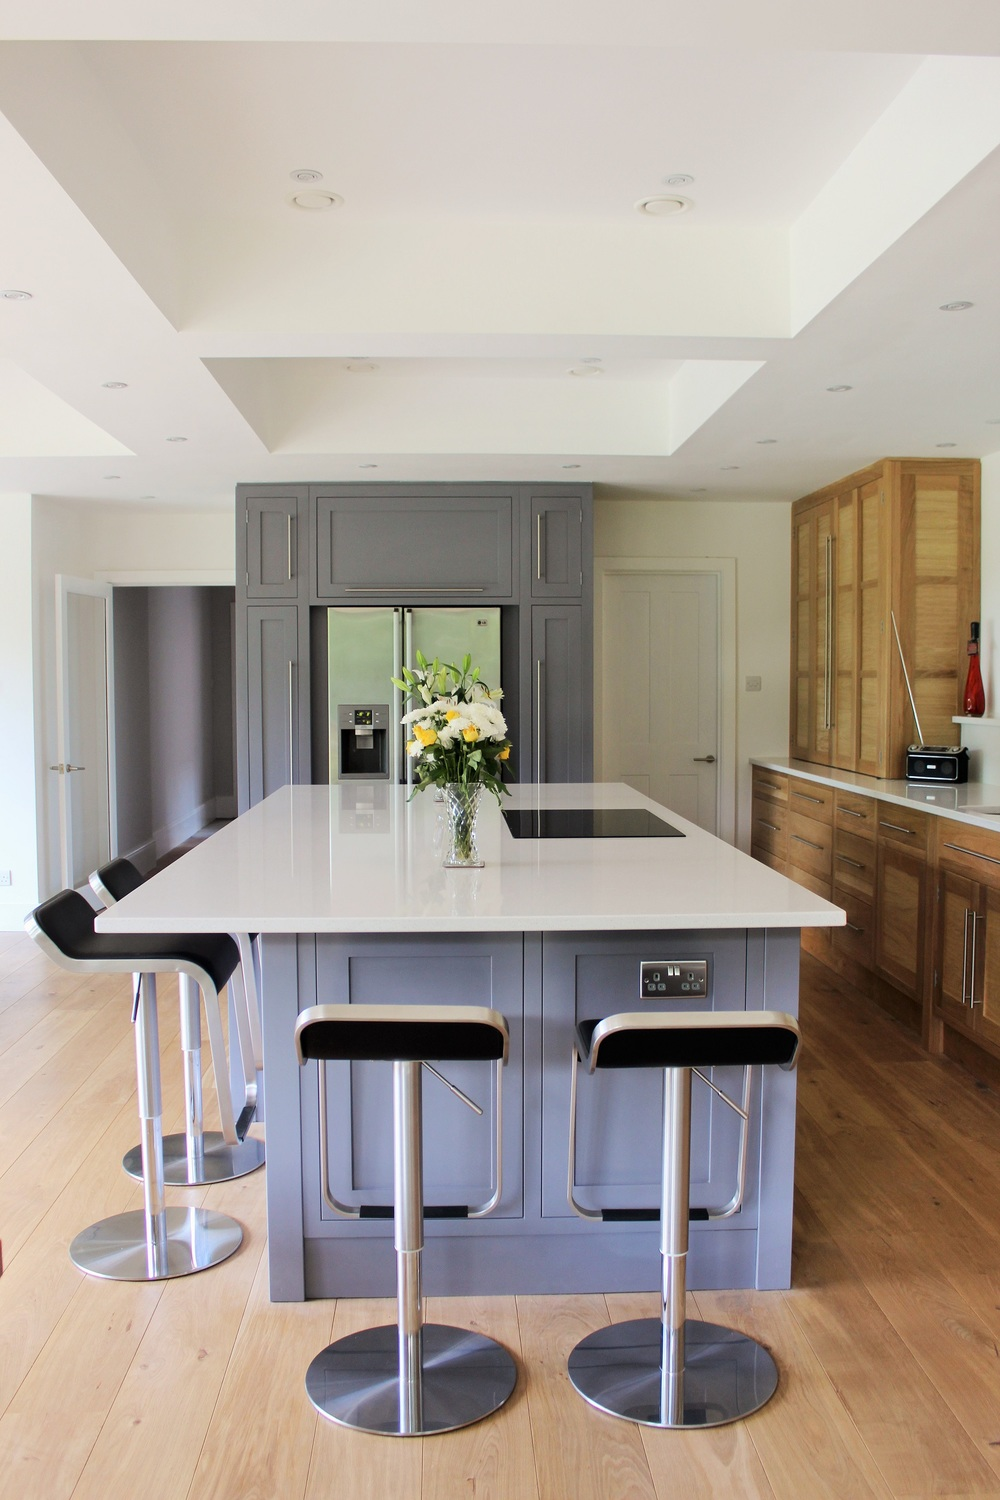 Glanton   A modern Shaker-style kitchen.  Stunning, contemporary and yet traditional, Glanton epitomizes the hand-crafted kitchen. Painted Shaker-style units and dovetailed drawer boxes mixed with natural oak, modern fittings and crisp white stone.   Cabinetry - painted in Collins Bespoke's custom-made Greywillow and Waterborne natural oak finish: £16,000 installed.    Worktops - Quartz - Silestone Blanco Maple polished, with upstands and cut-outs: £5500 installed.    Additions - oak cutlery dividers, integrated recycling units, pull-out larder: £1100 approx. installed.